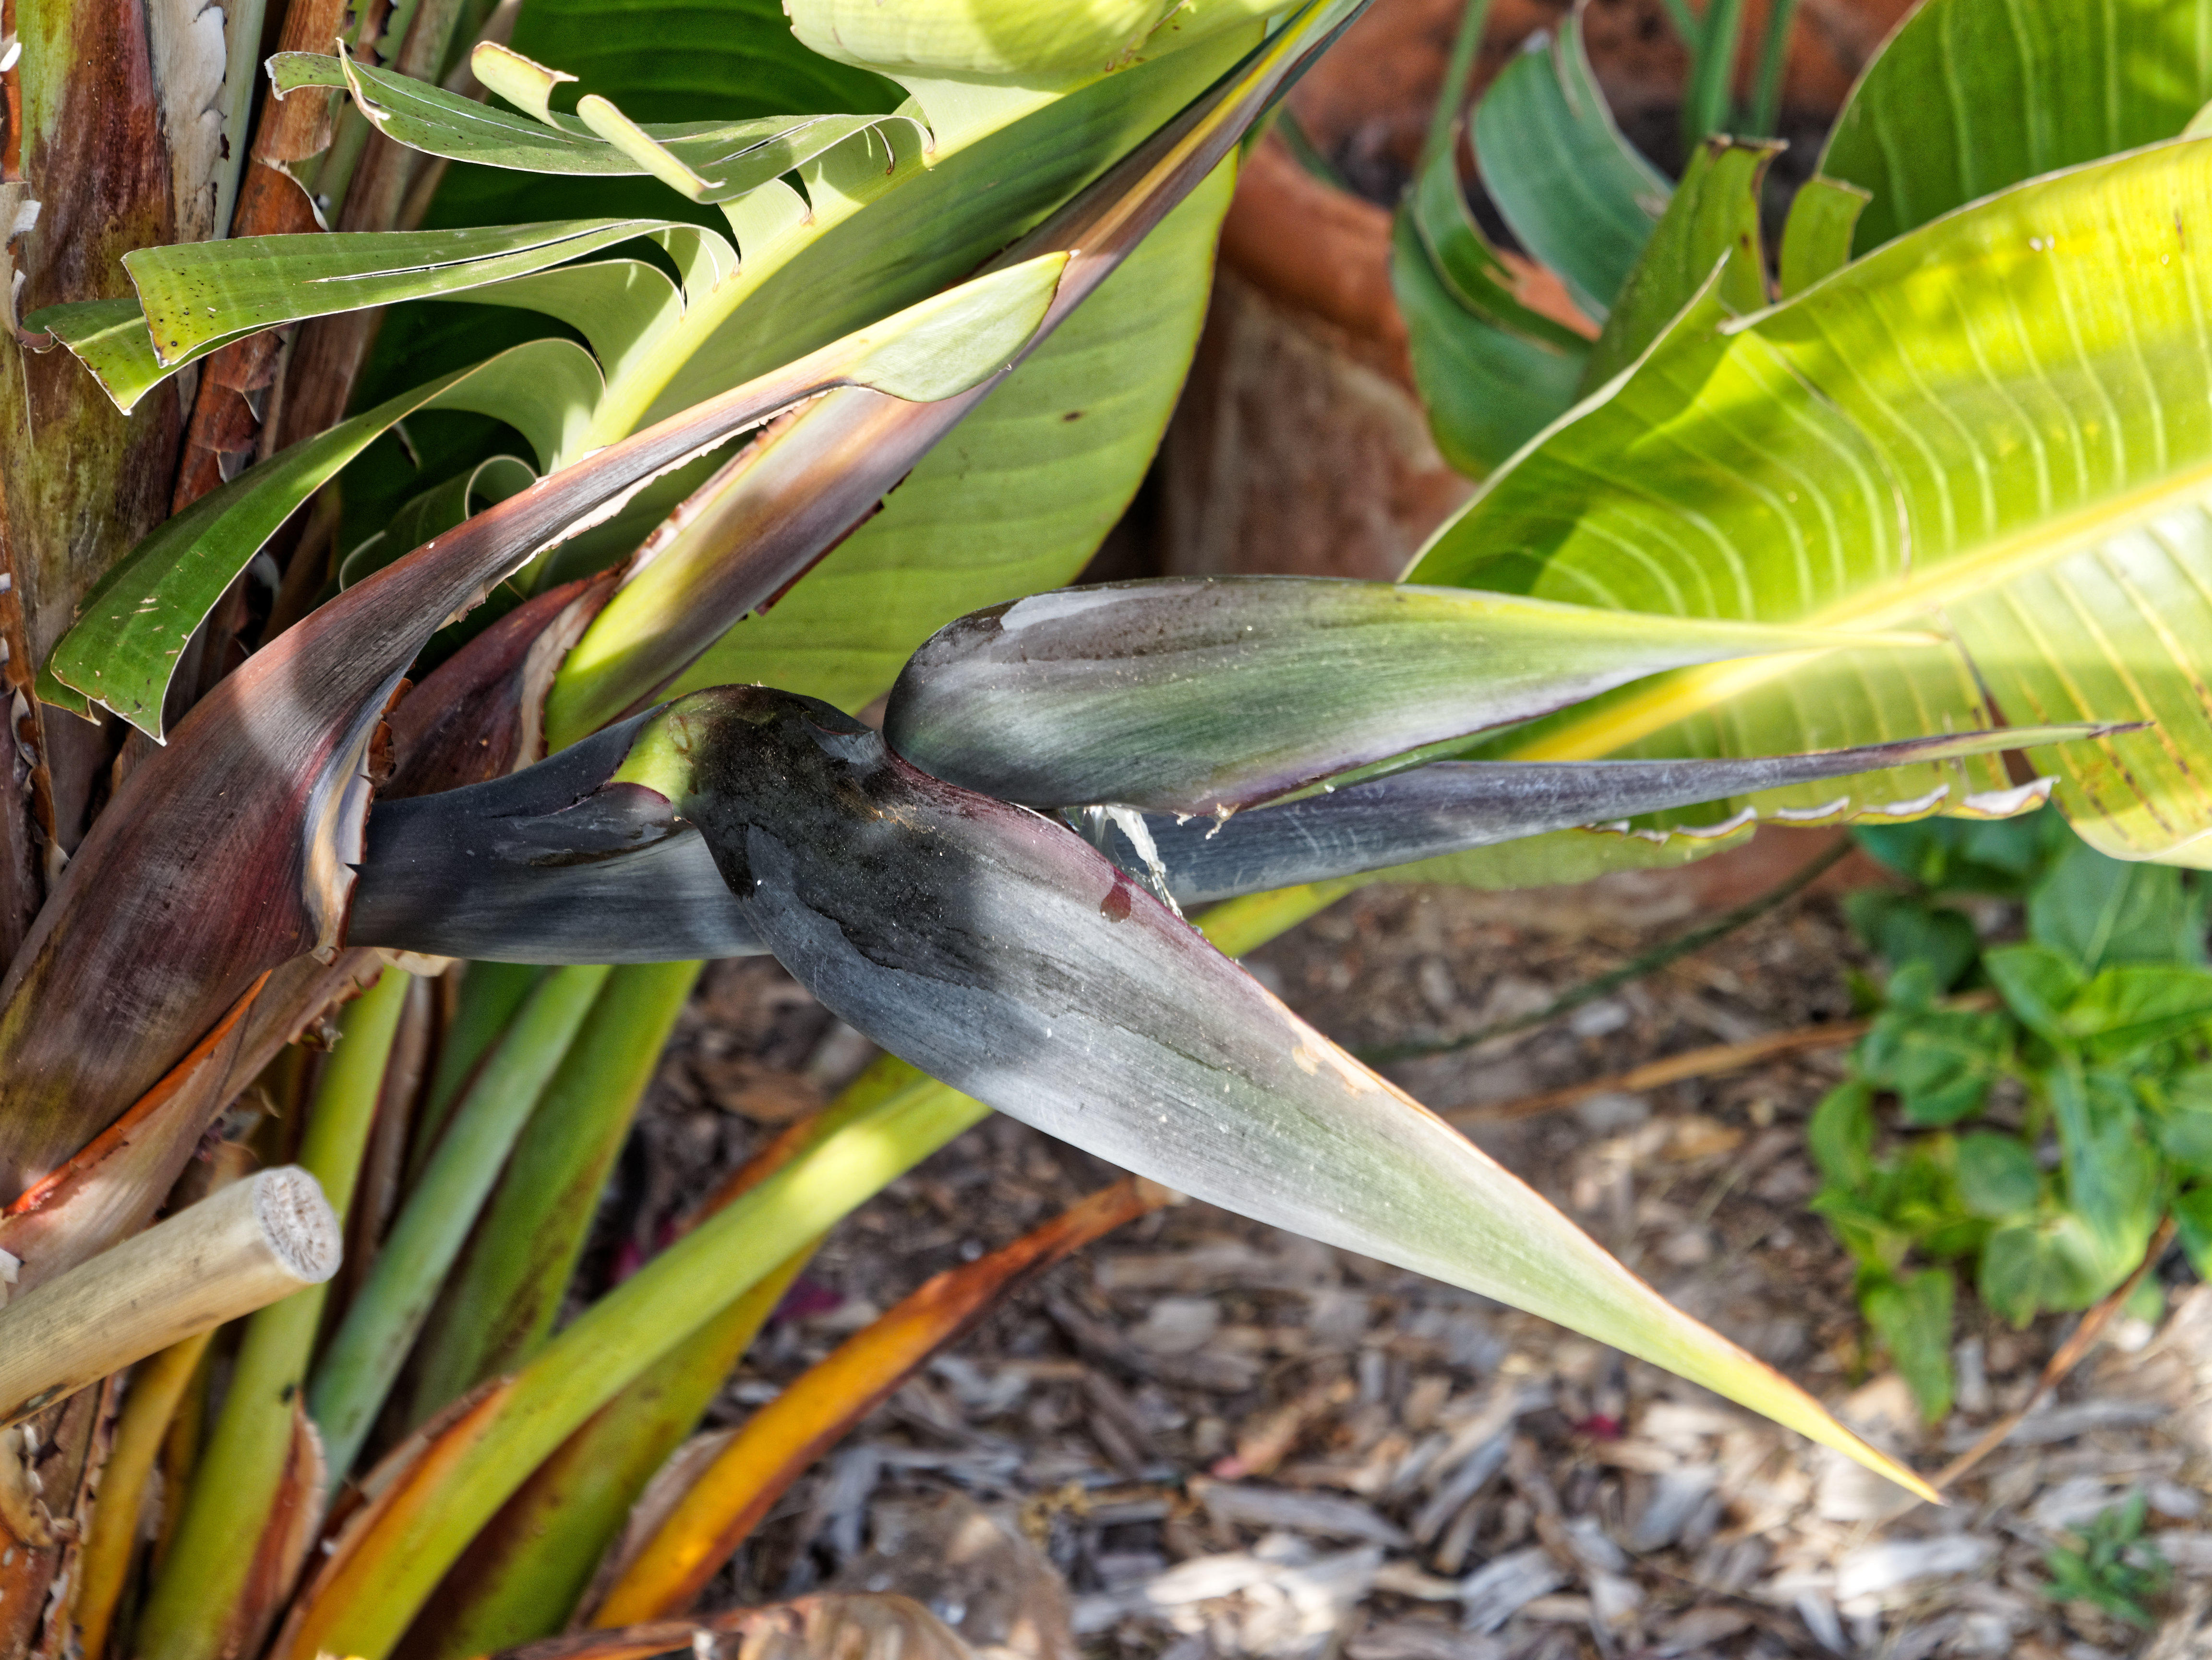 This should be Strelitzia-nicolai-1.jpeg.  Is it missing?